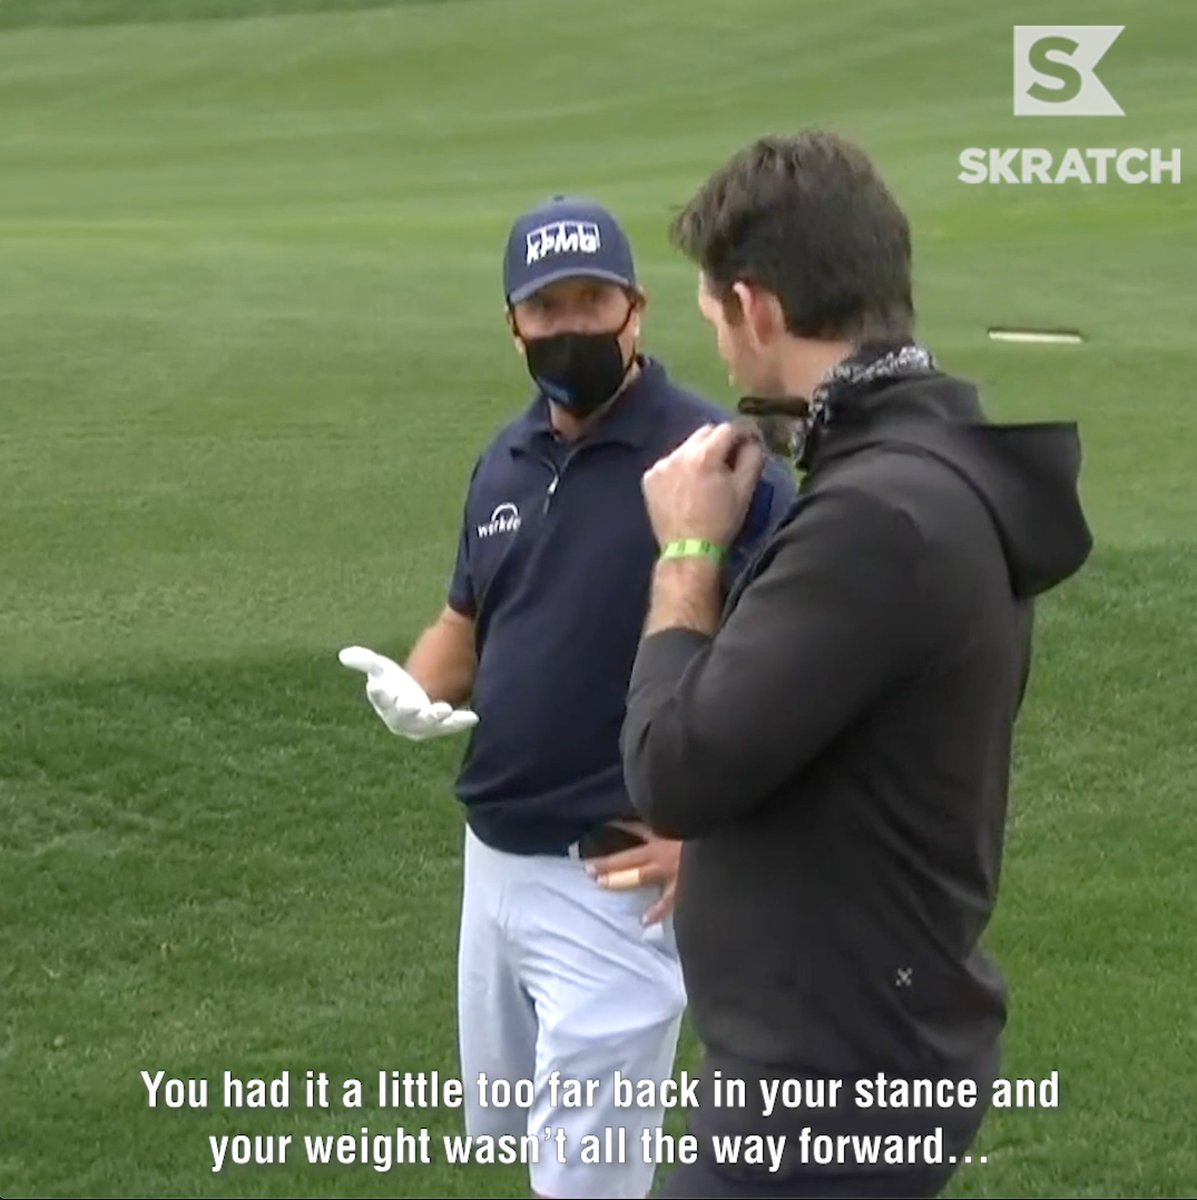 The ultimate power move by @PhilMickelson.